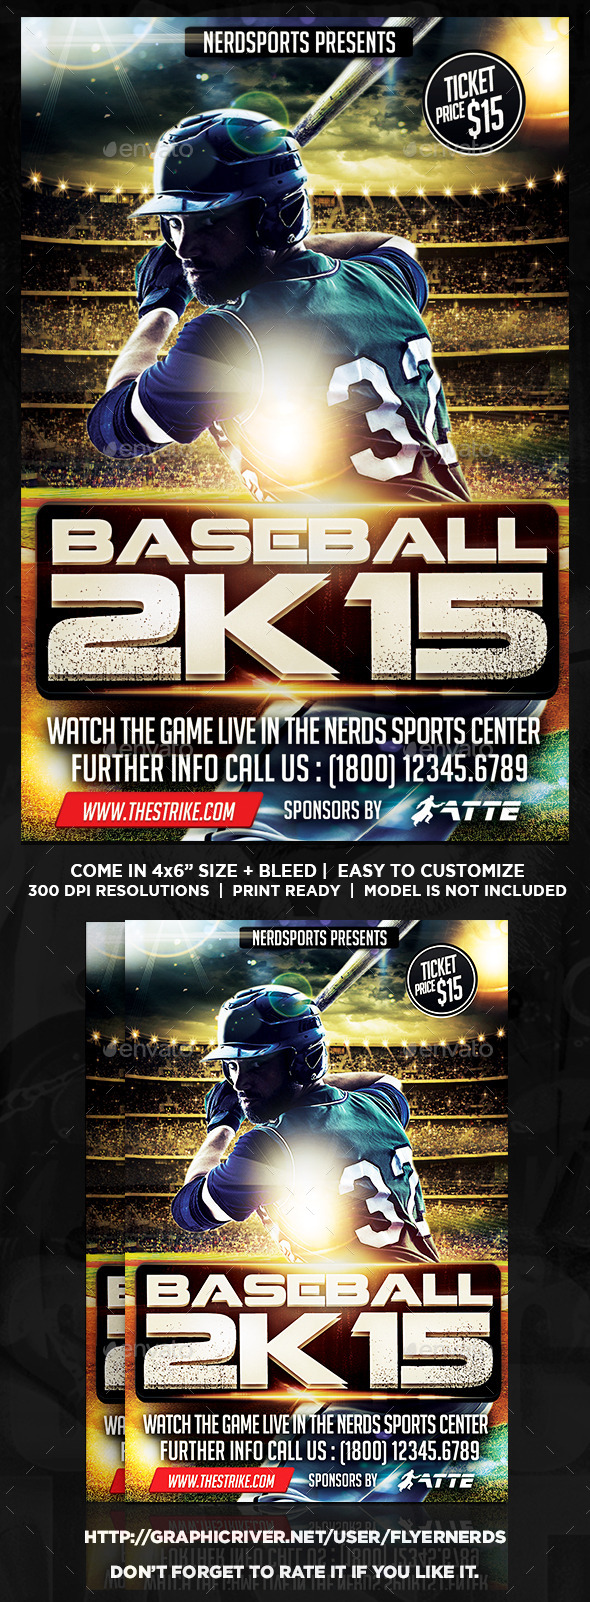 GraphicRiver Baseball 2K15 Championships Flyer 11879329